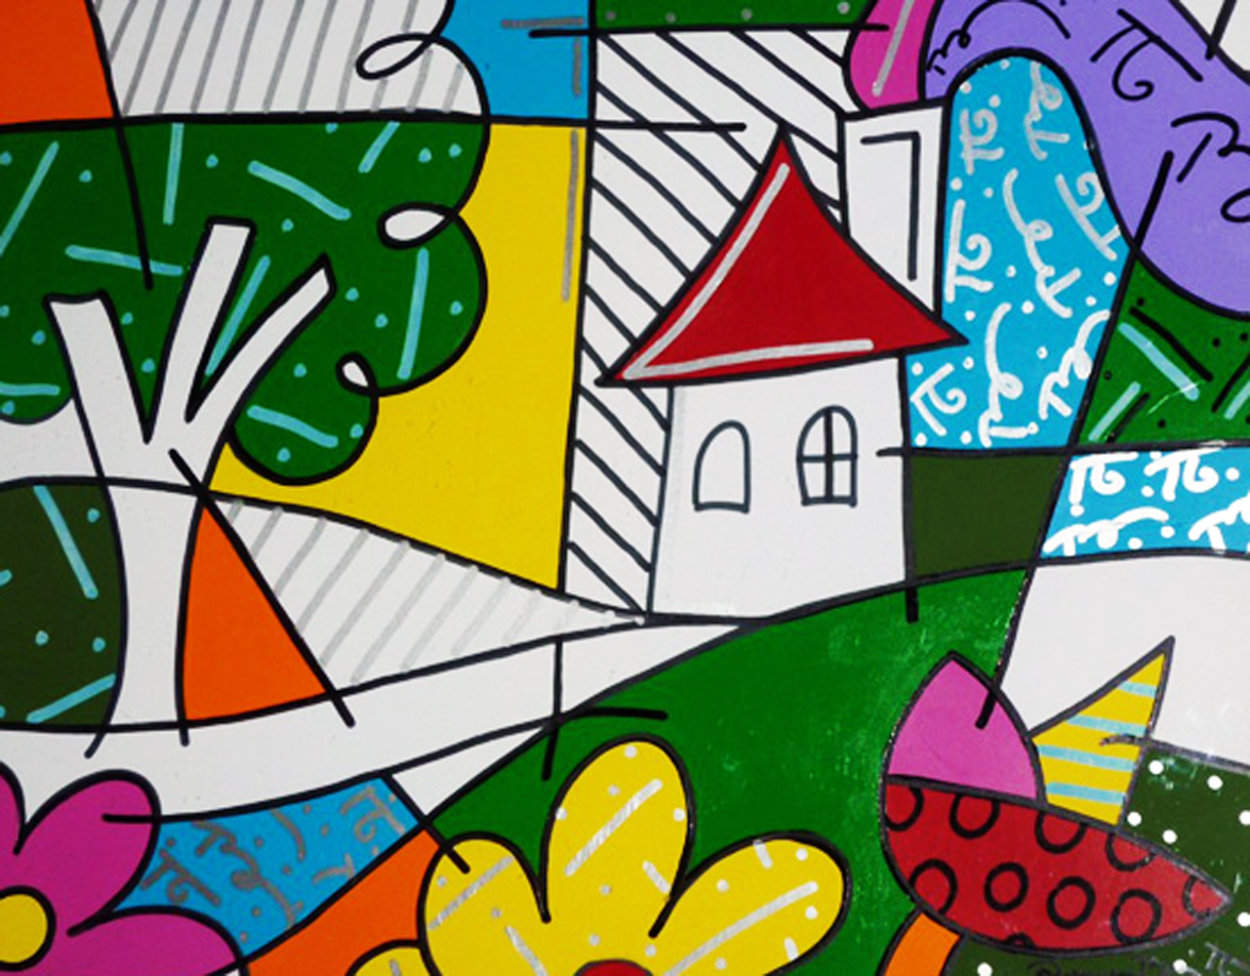 House With Tree on Left 1997 34x41 Huge Original Painting by Romero Britto